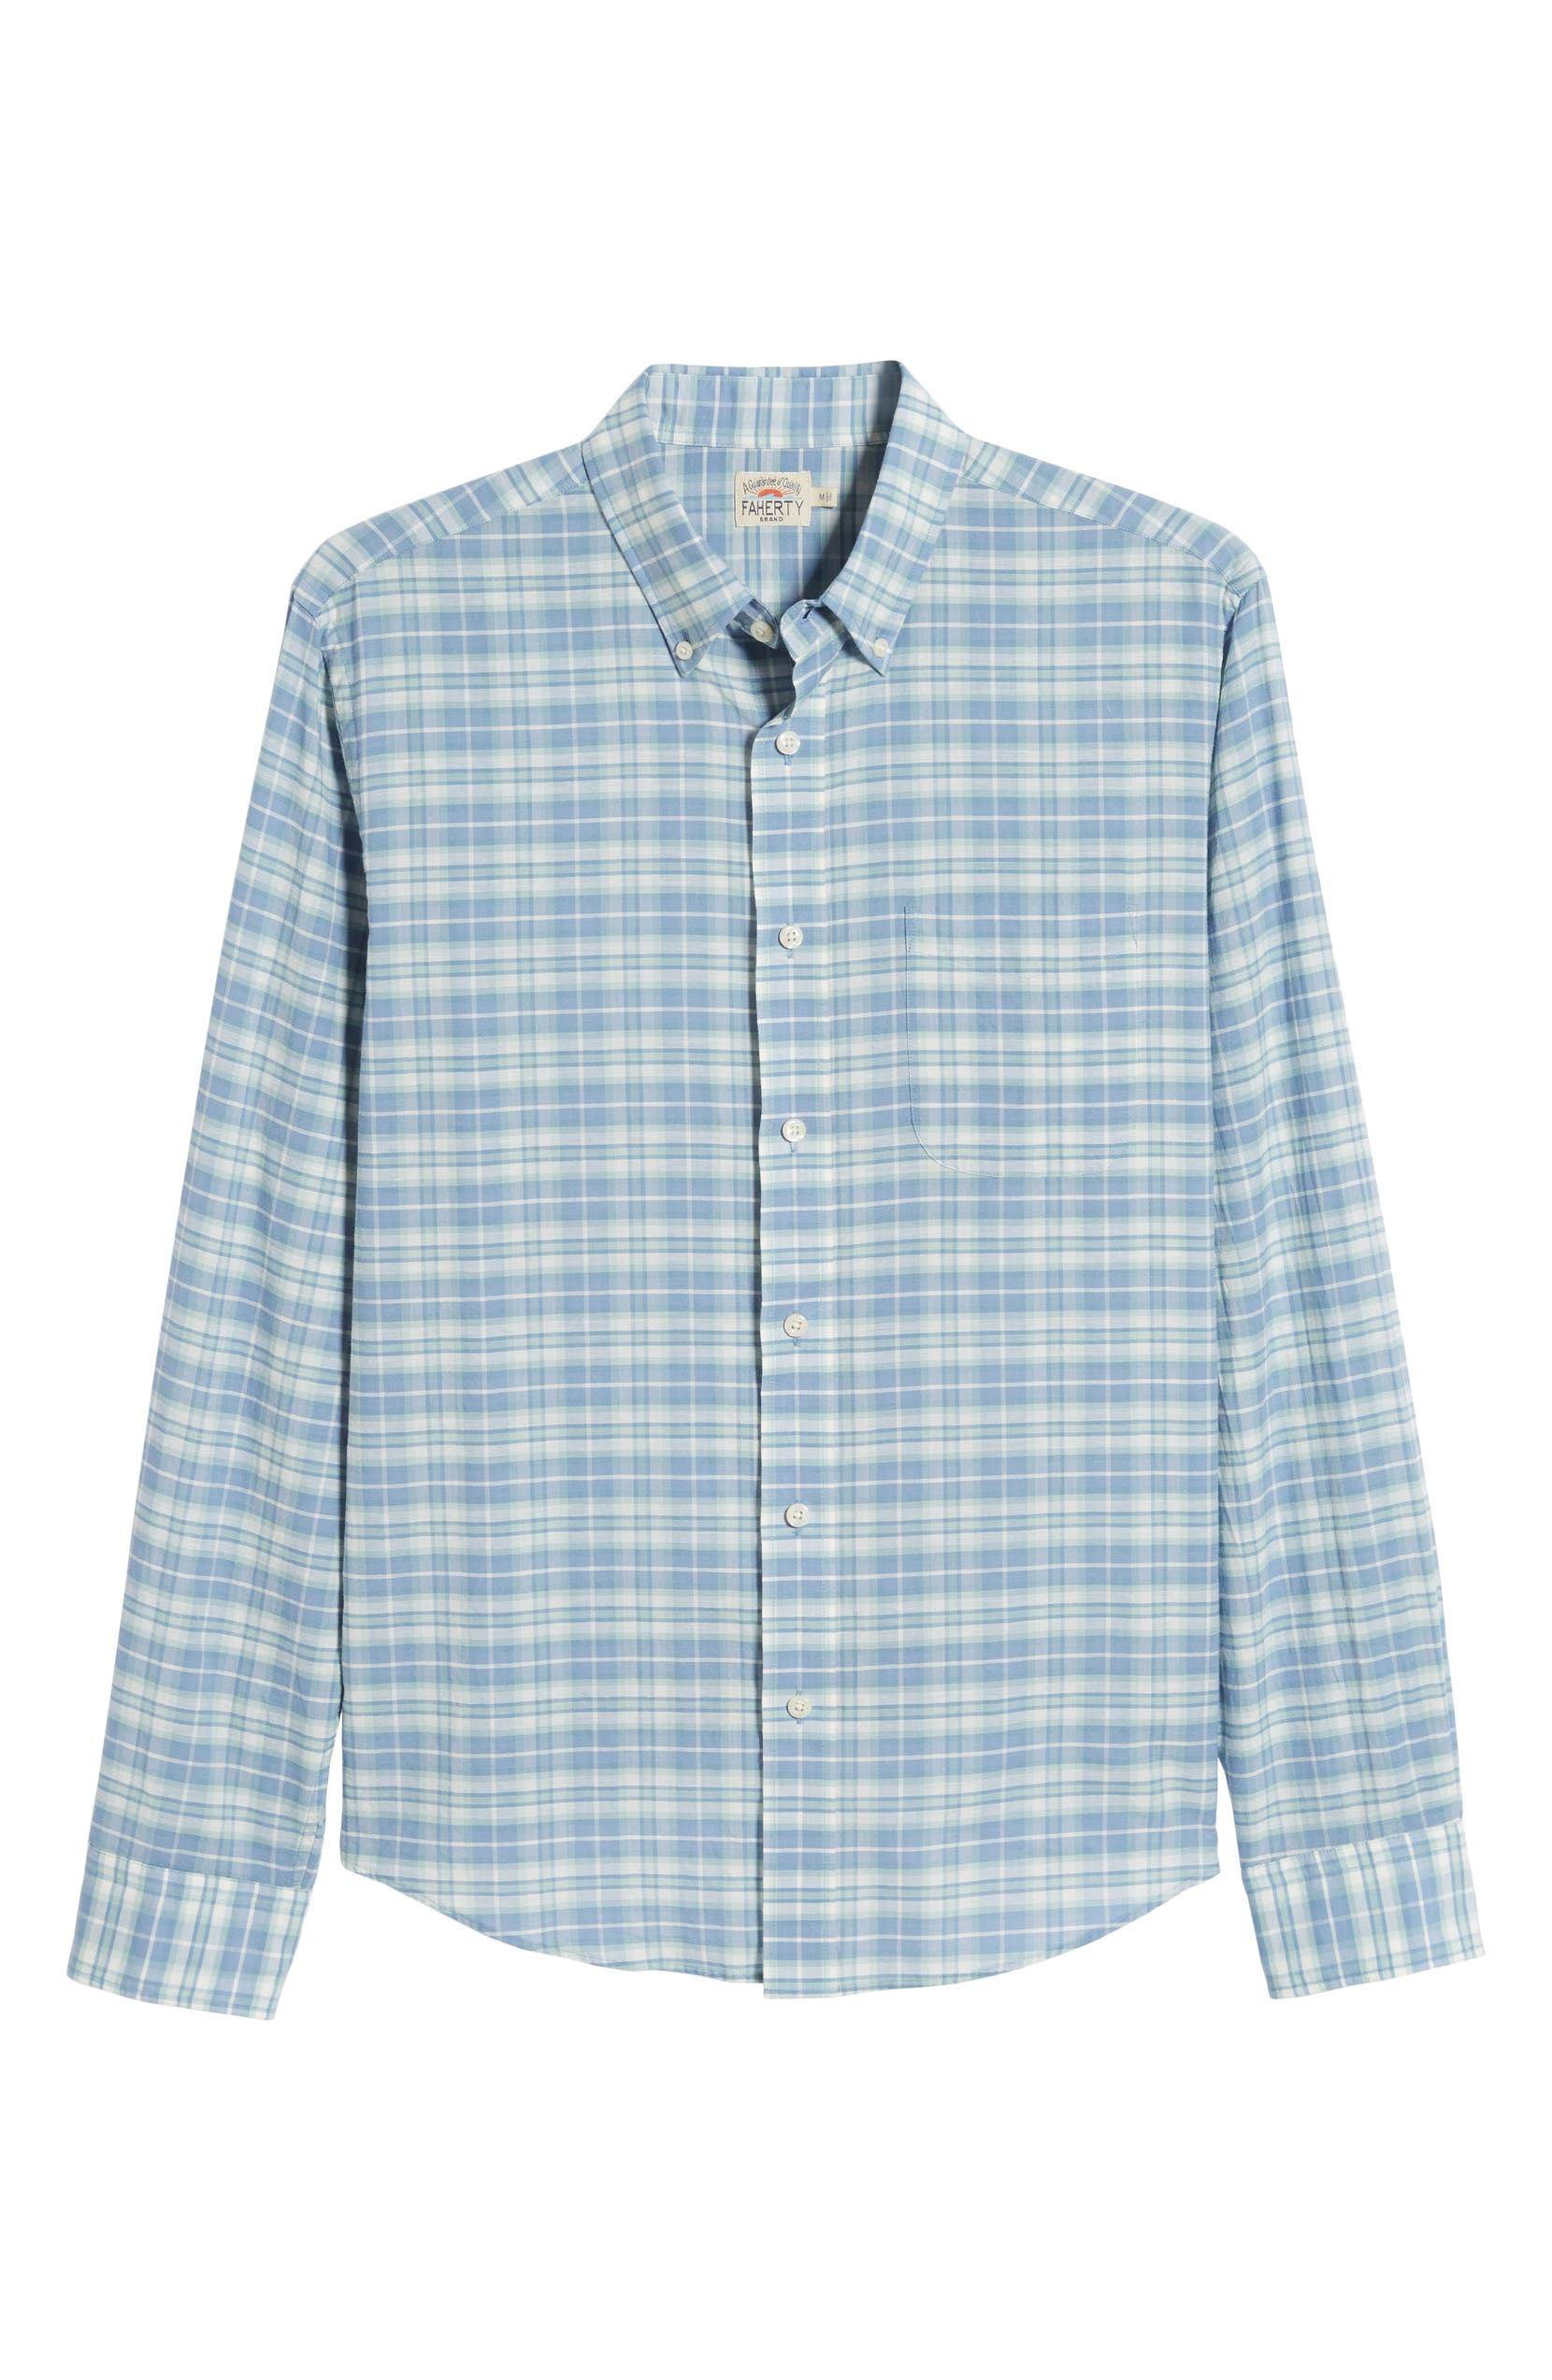 130a8995 Faherty Summer Blend Regular Fit Plaid Sport Shirt | Nordstrom